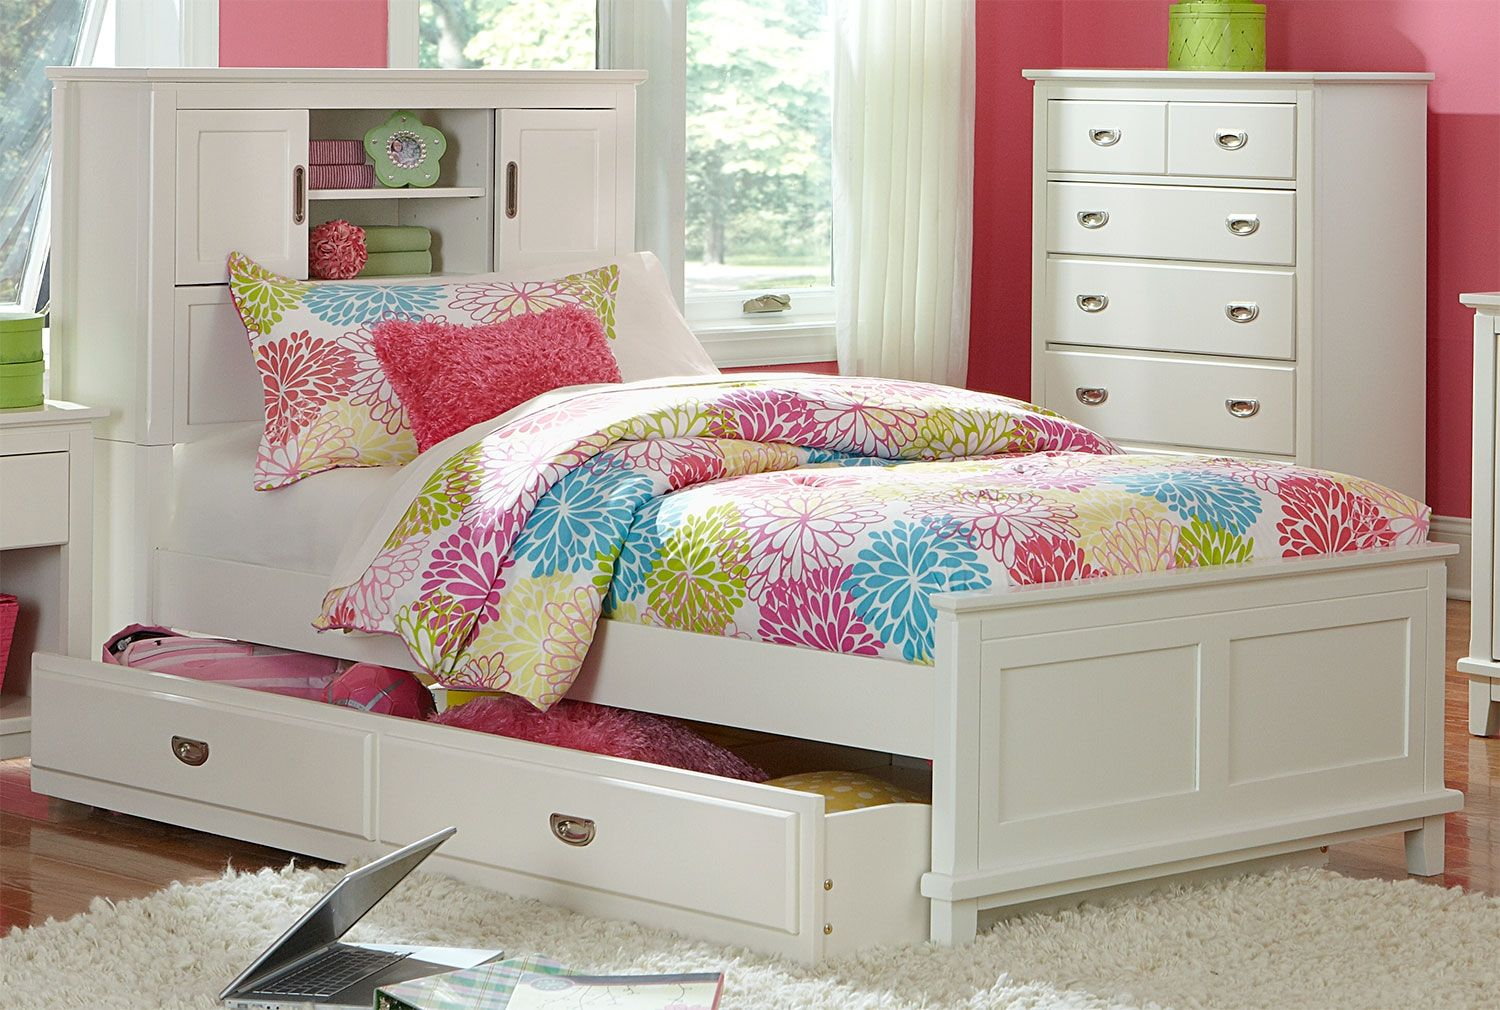 Chadwick Full Bookcase Bed White Bed Frame Design Bed With Drawers Twin Bed Frame